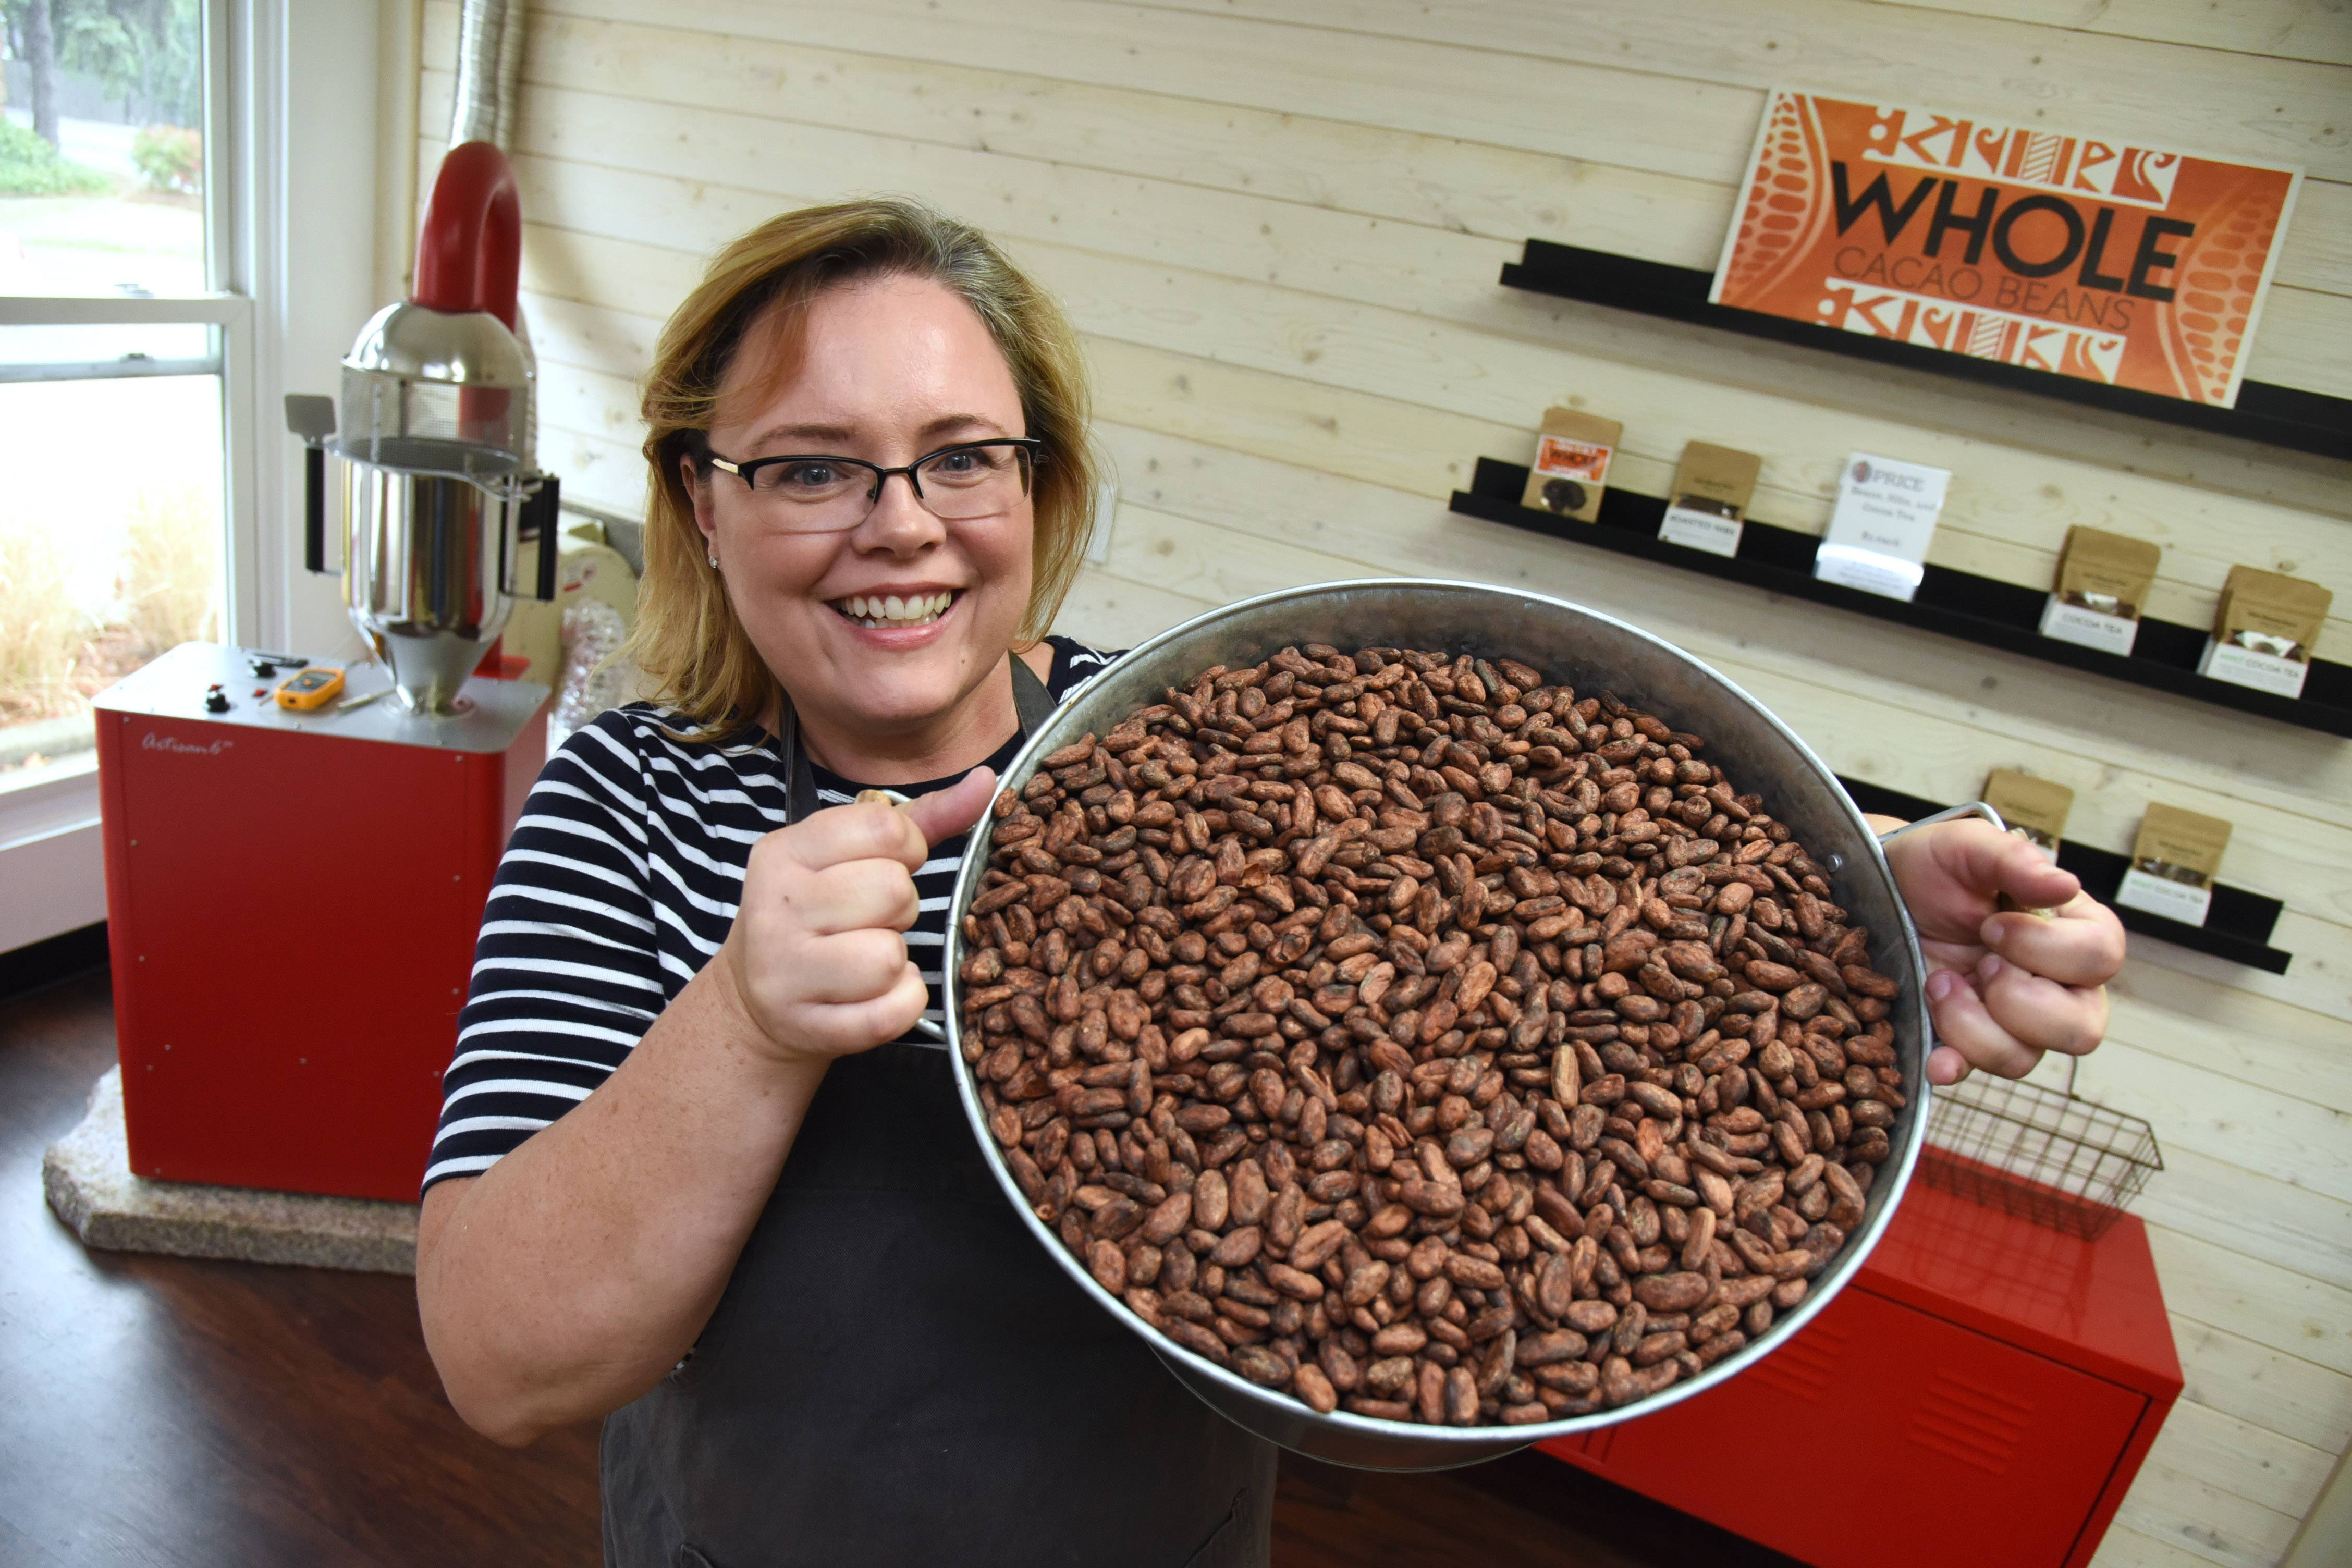 Chocolate shop opens in downtown Wauconda